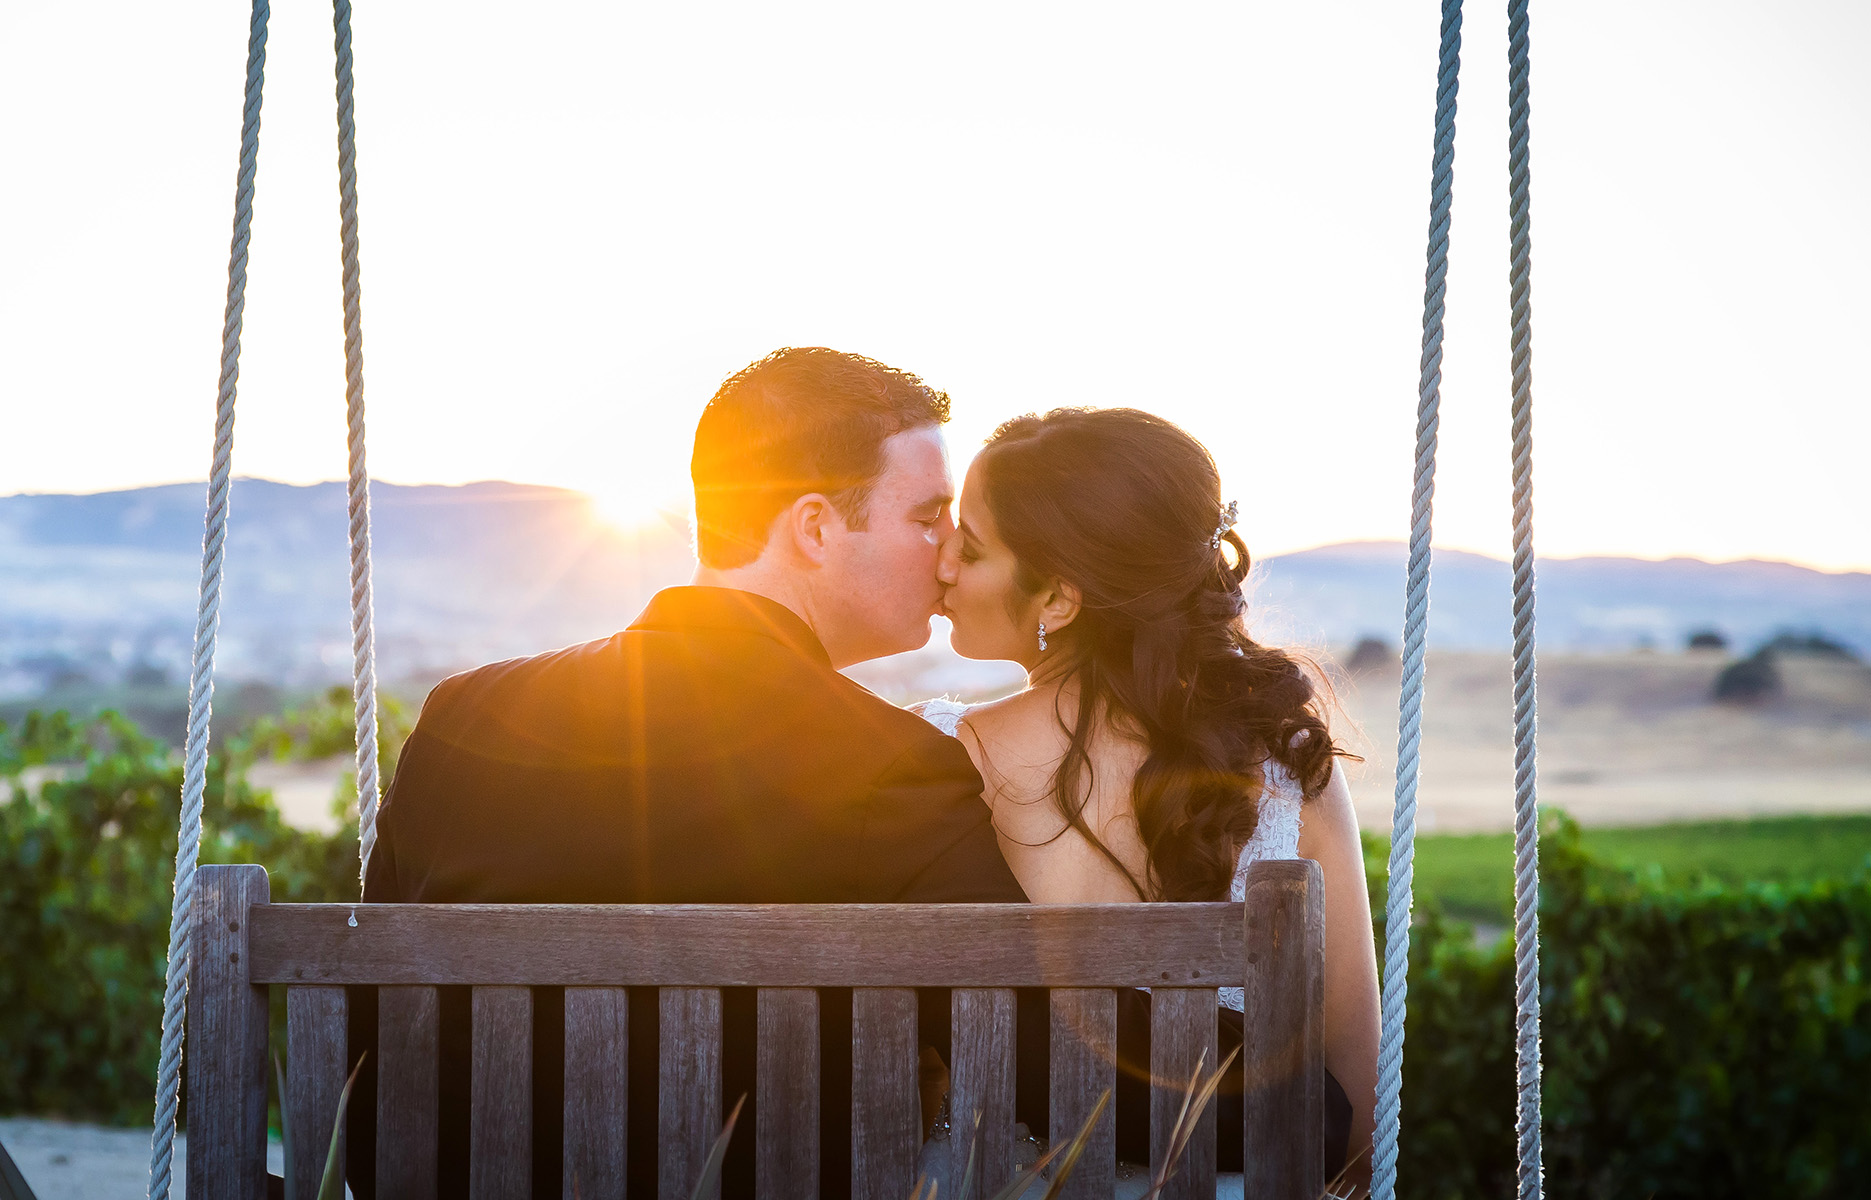 Pear Valley Vineyards Wedding Photographer - Julie & Mike's Paso Robles Wedding - Clair Images Wedding Photography